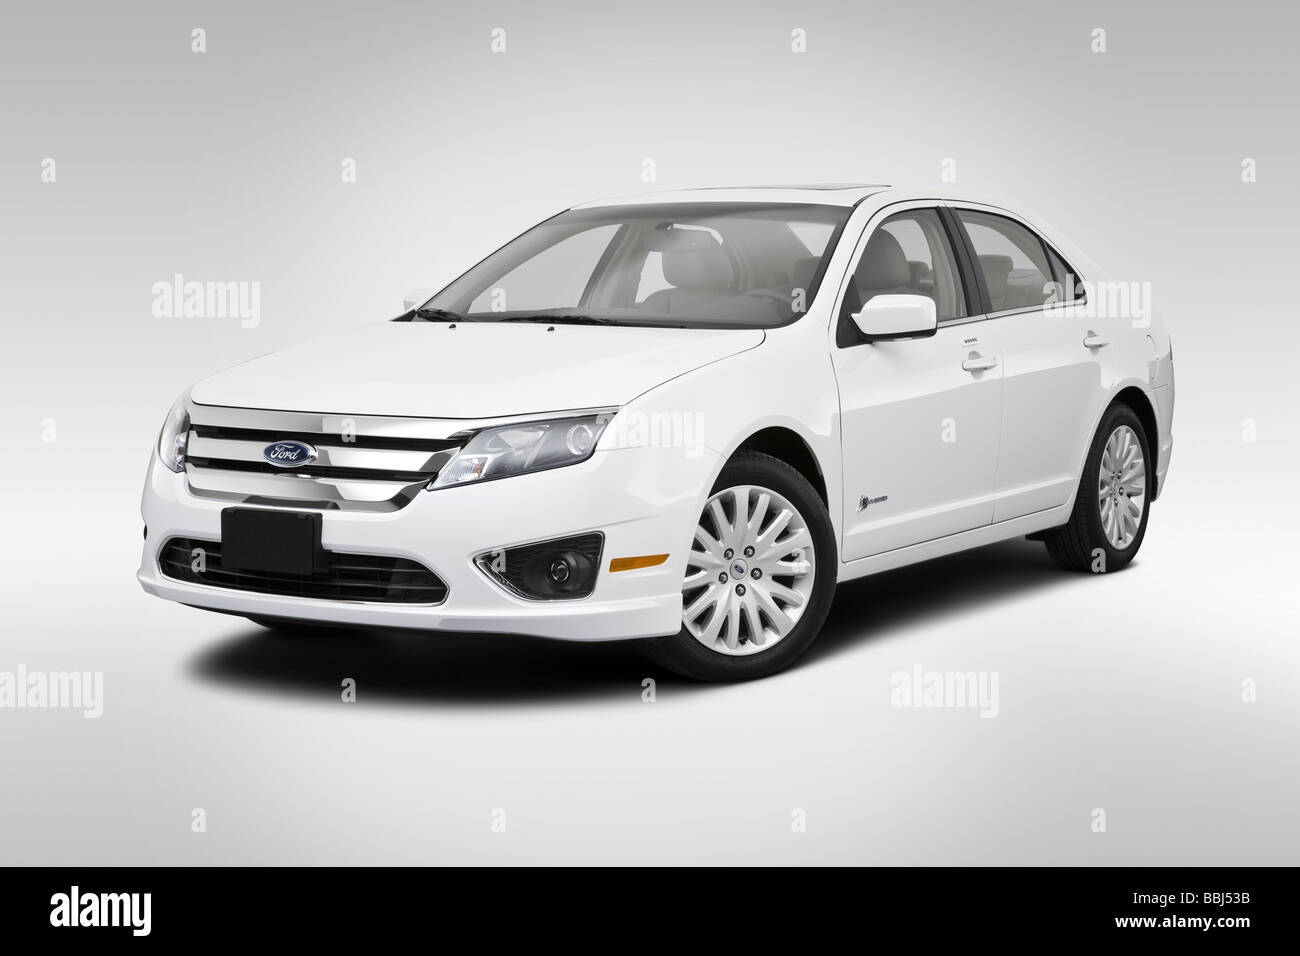 2010 Ford Fusion Hybrid in White - Front angle view - Stock Image